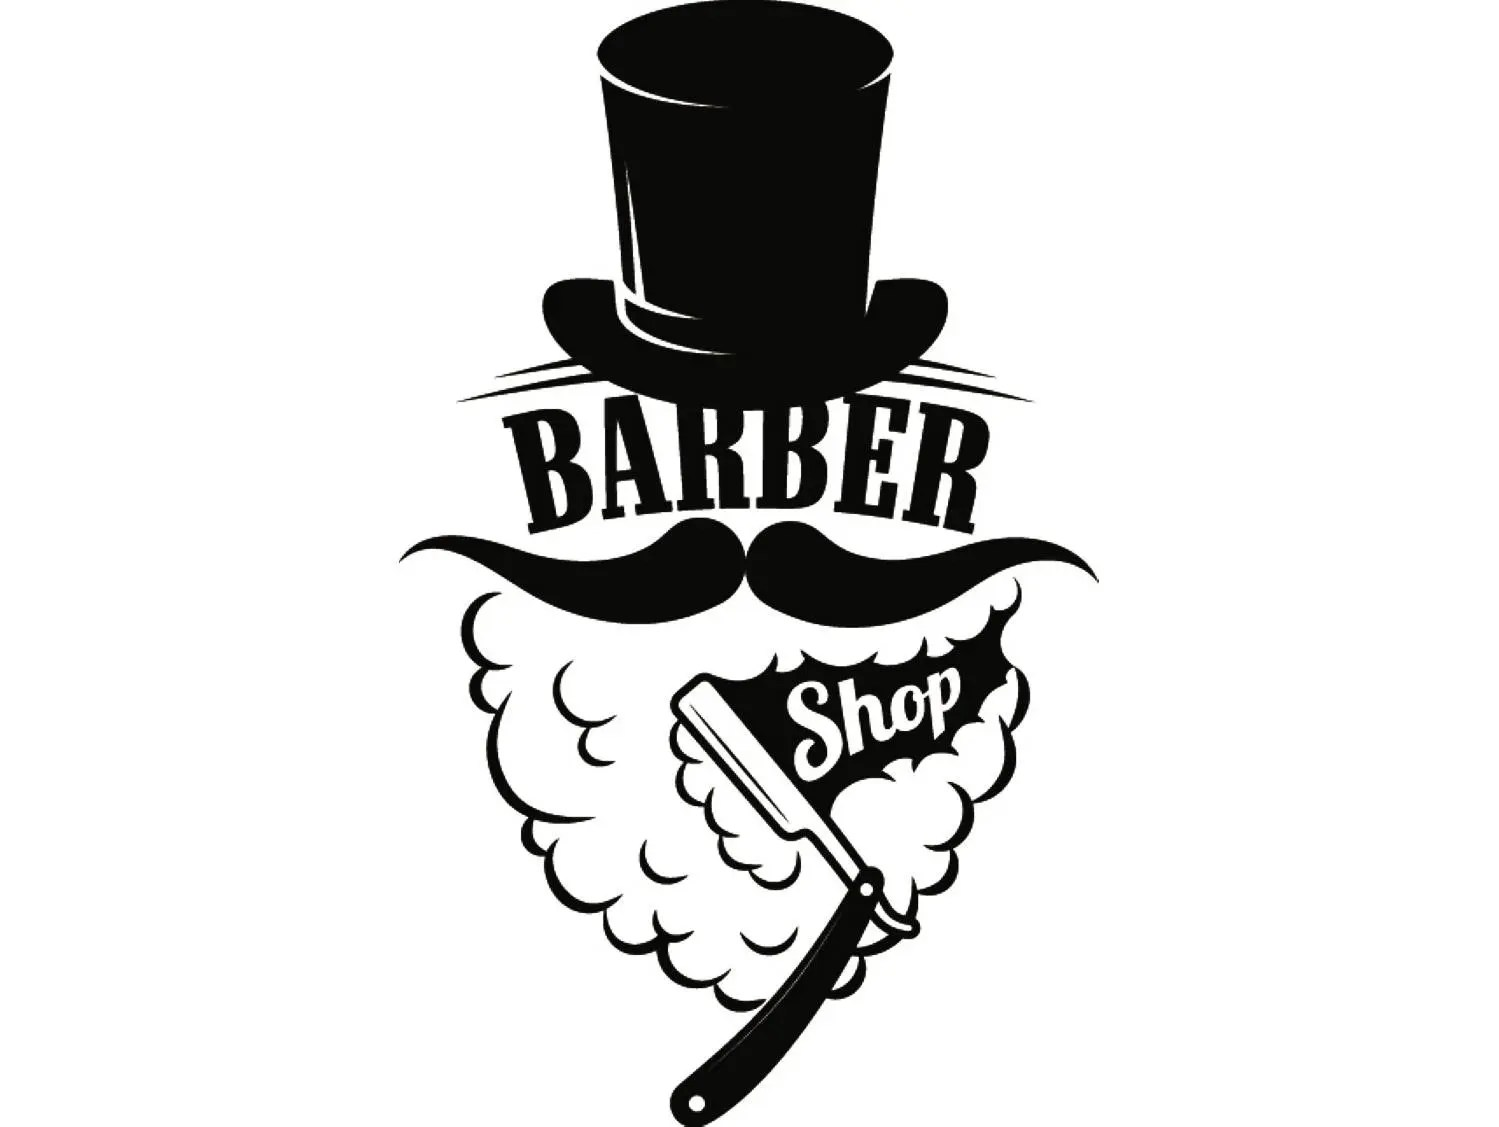 barber logo svg - HD 1499×1127